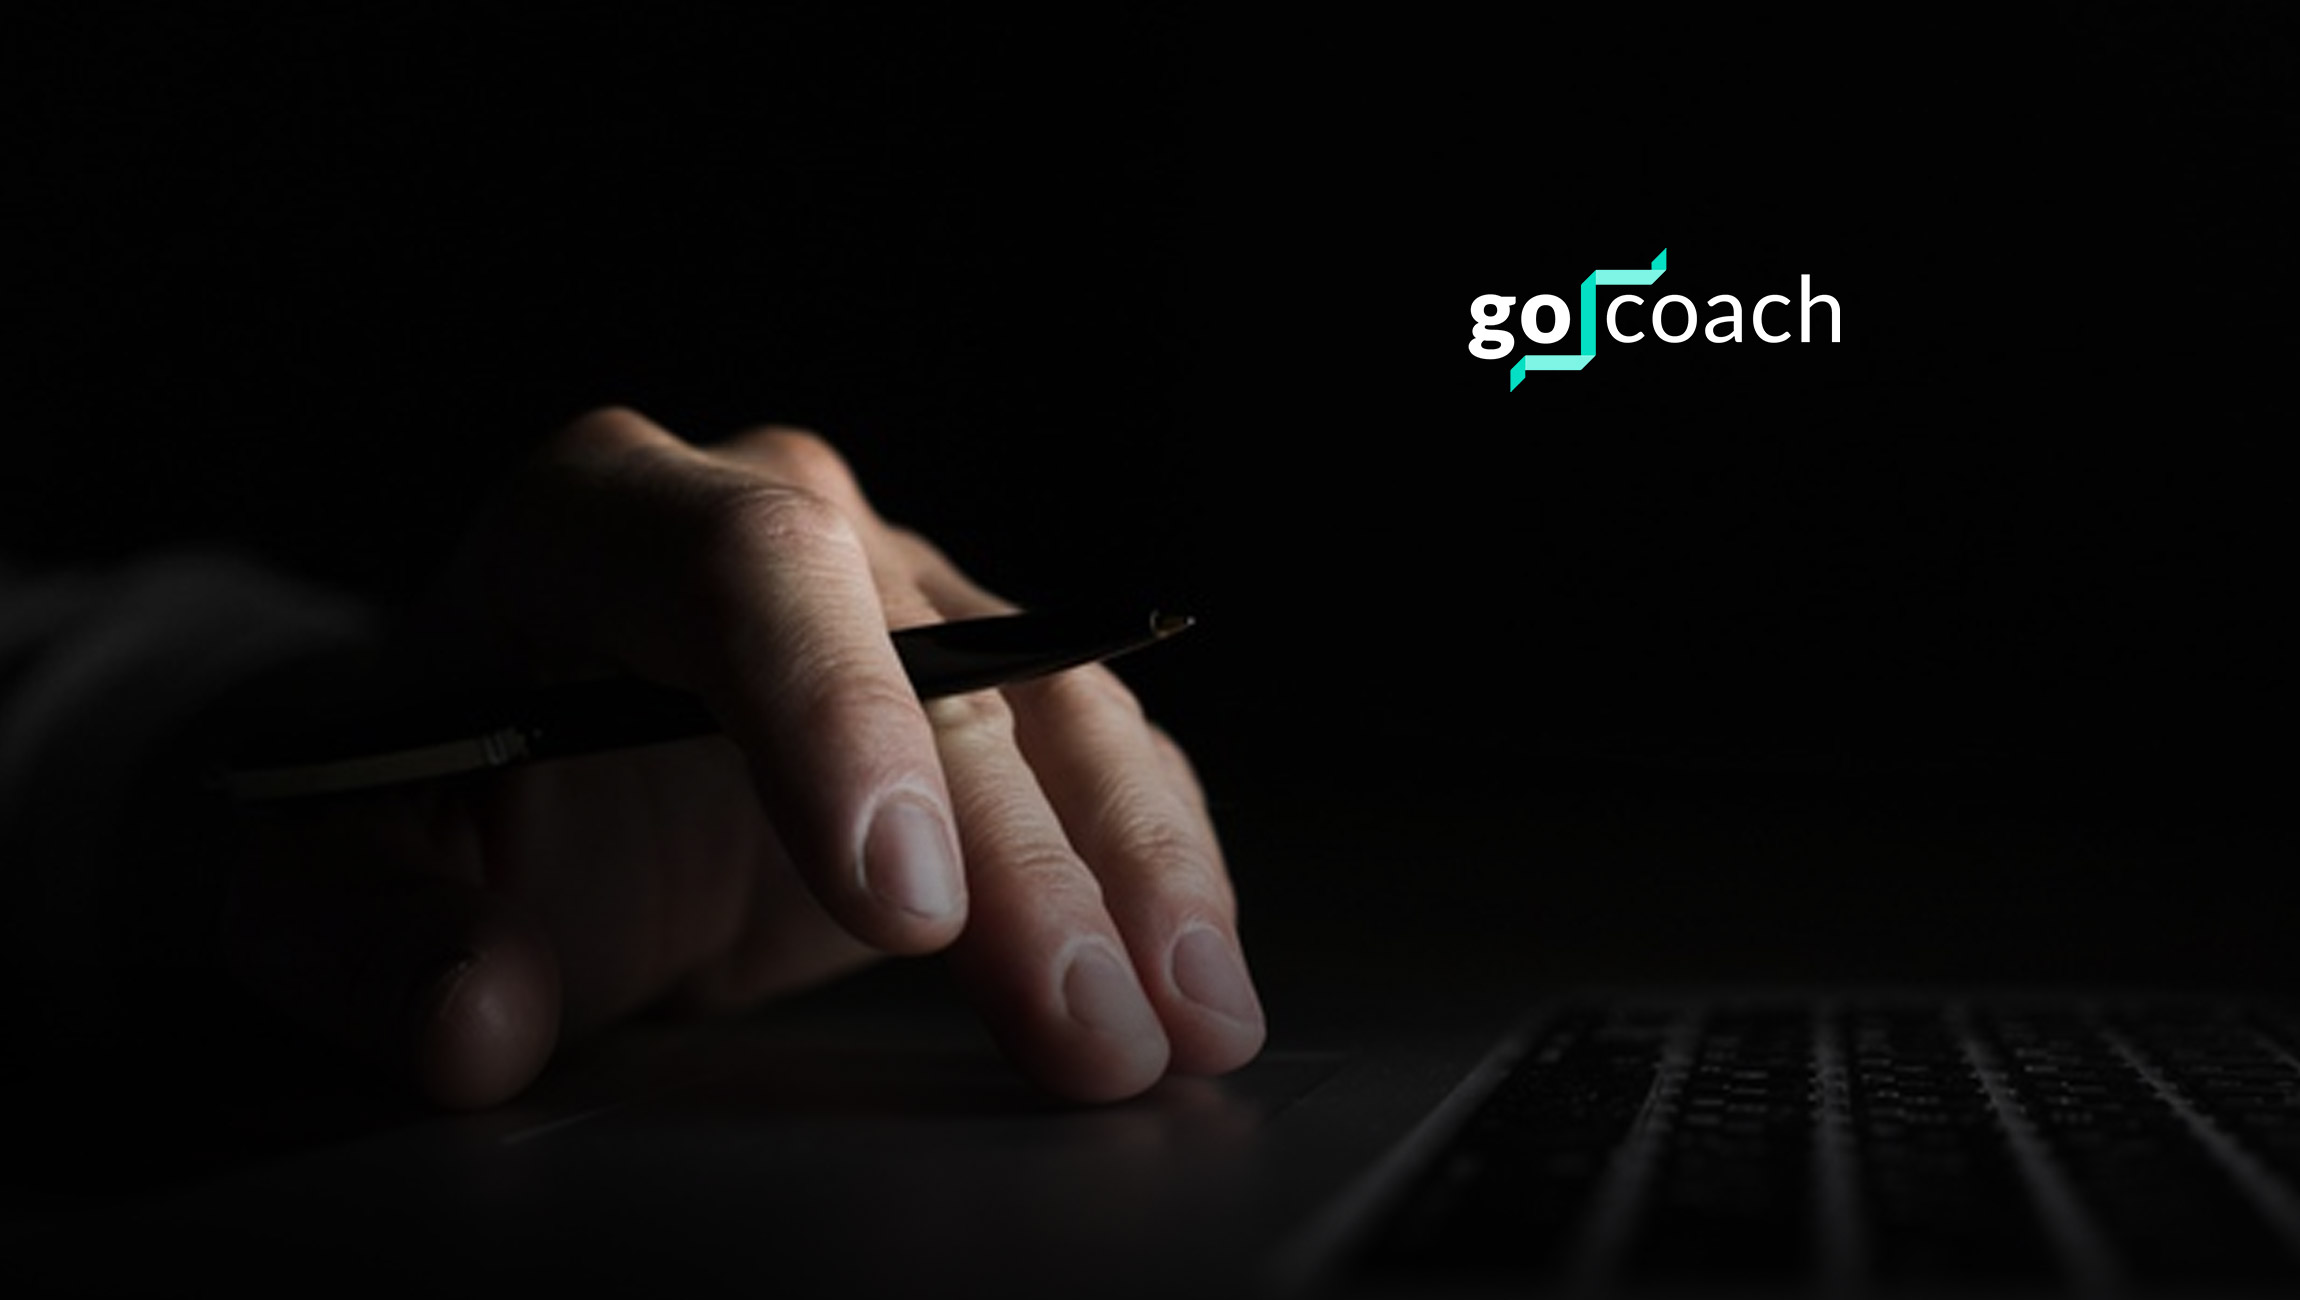 GoCoach and Bridge Announce Partnership to Provide Full-Service Learning Solution